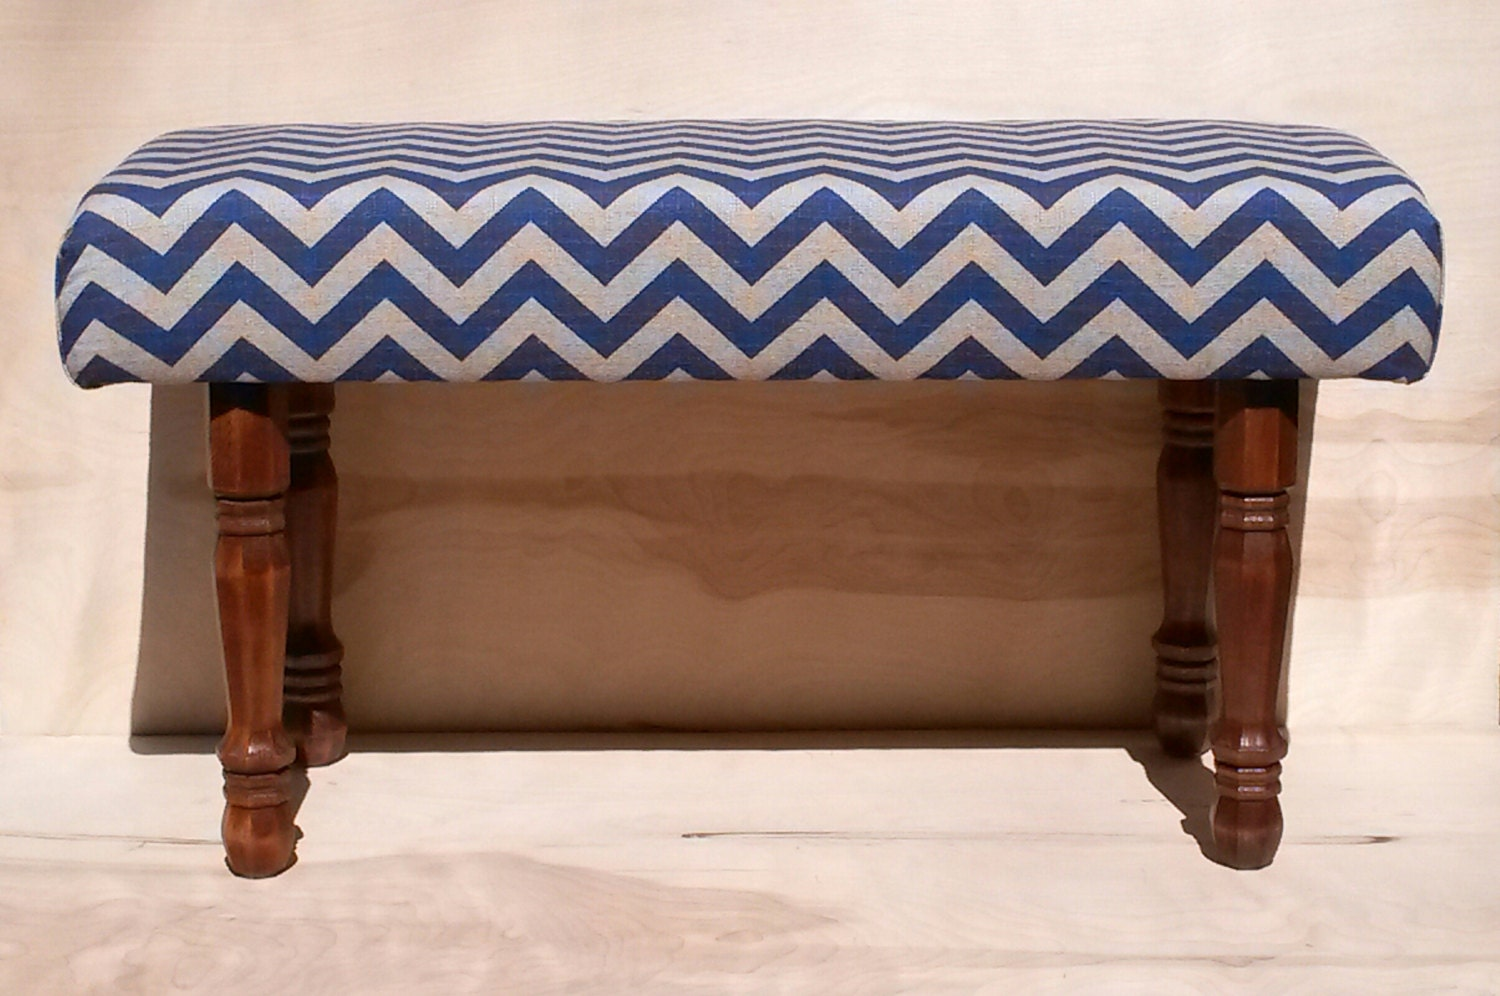 Upholstered Bench Blue And Tan Chevron